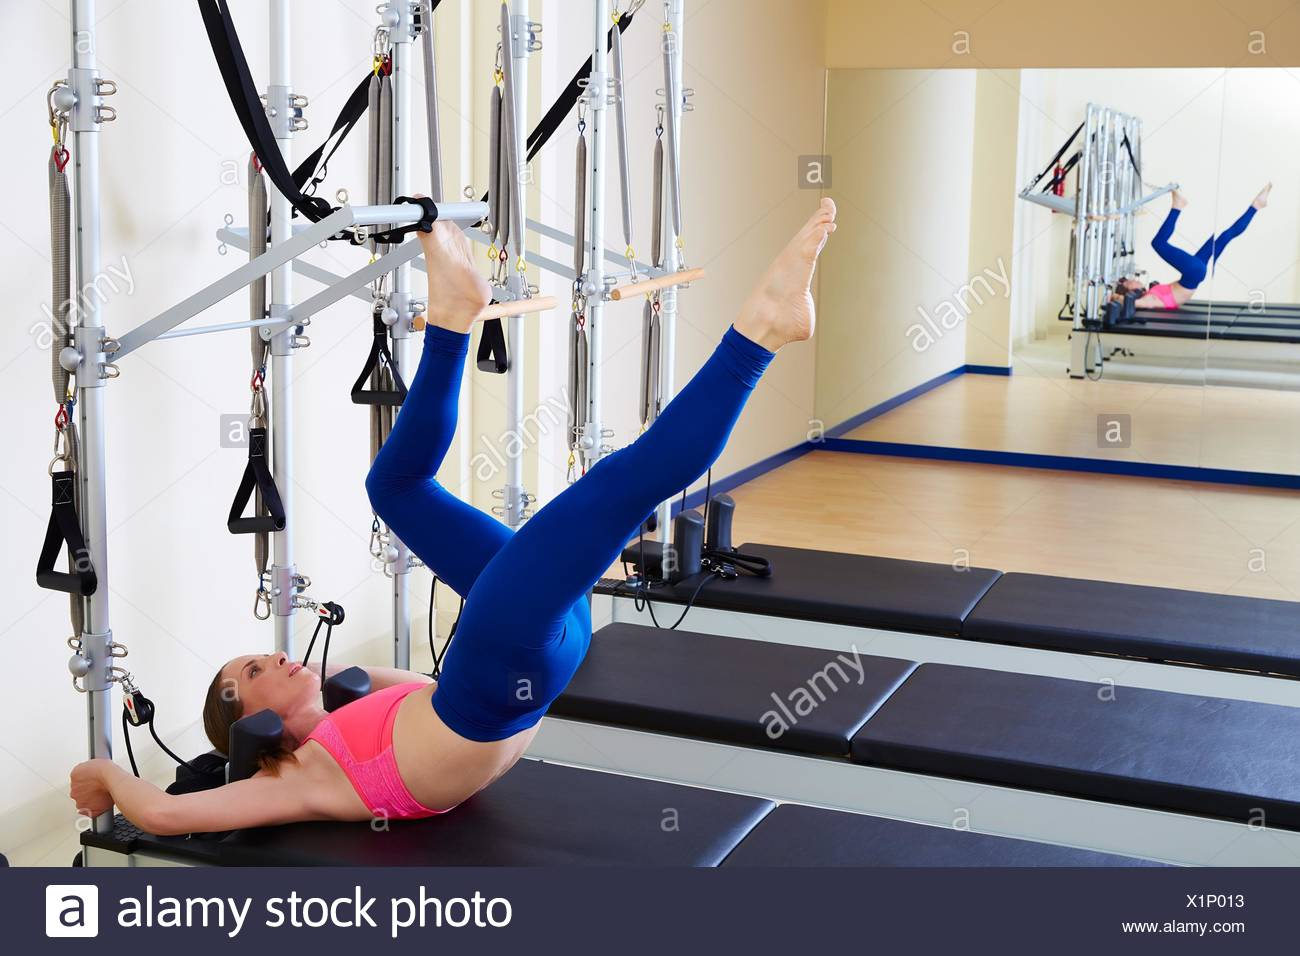 Pilates reformer woman tower exercise workout at gym indoor. - Stock Image